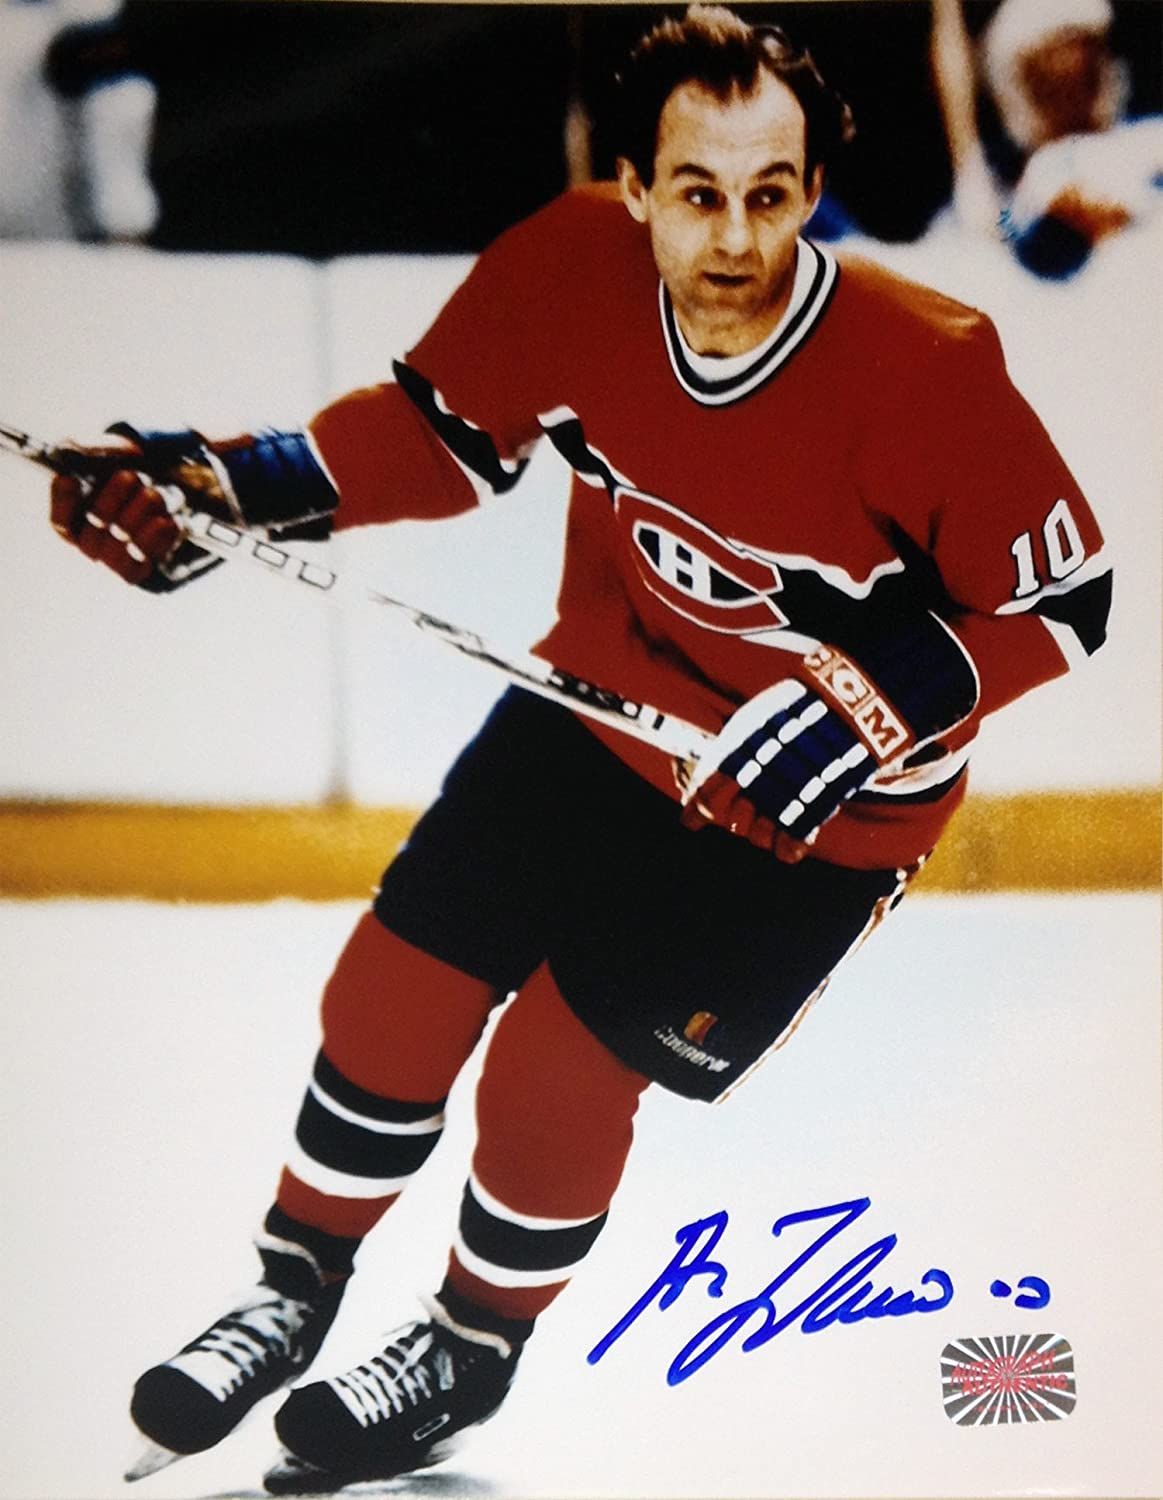 Guy Lafleur Autographed 8x10 Photograph (Red)Montreal Canadiens